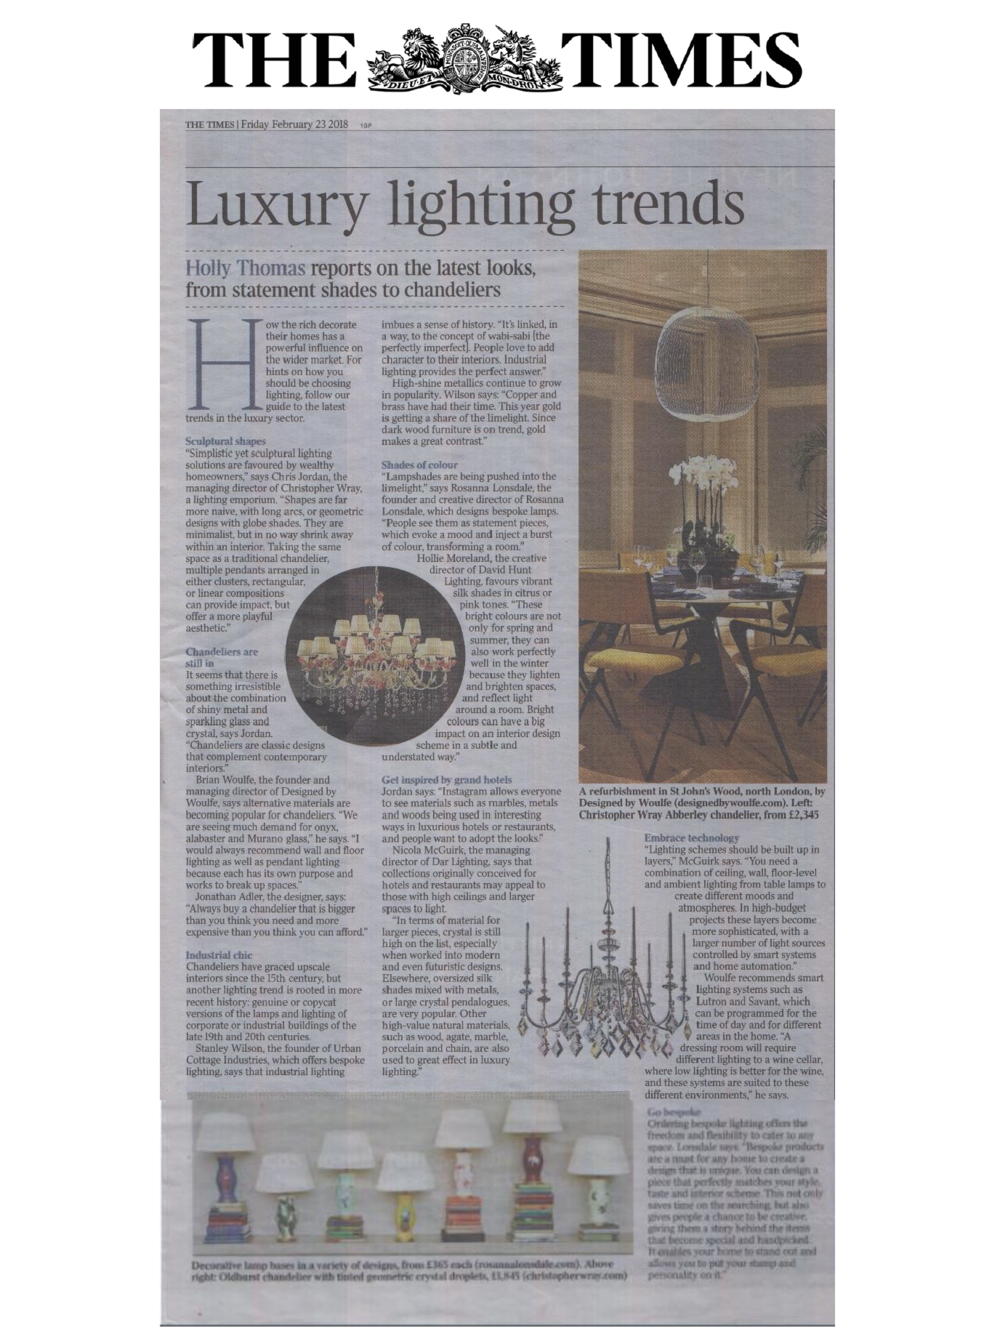 The Times, Designed by Woulfe, Luxury Lighting Trends